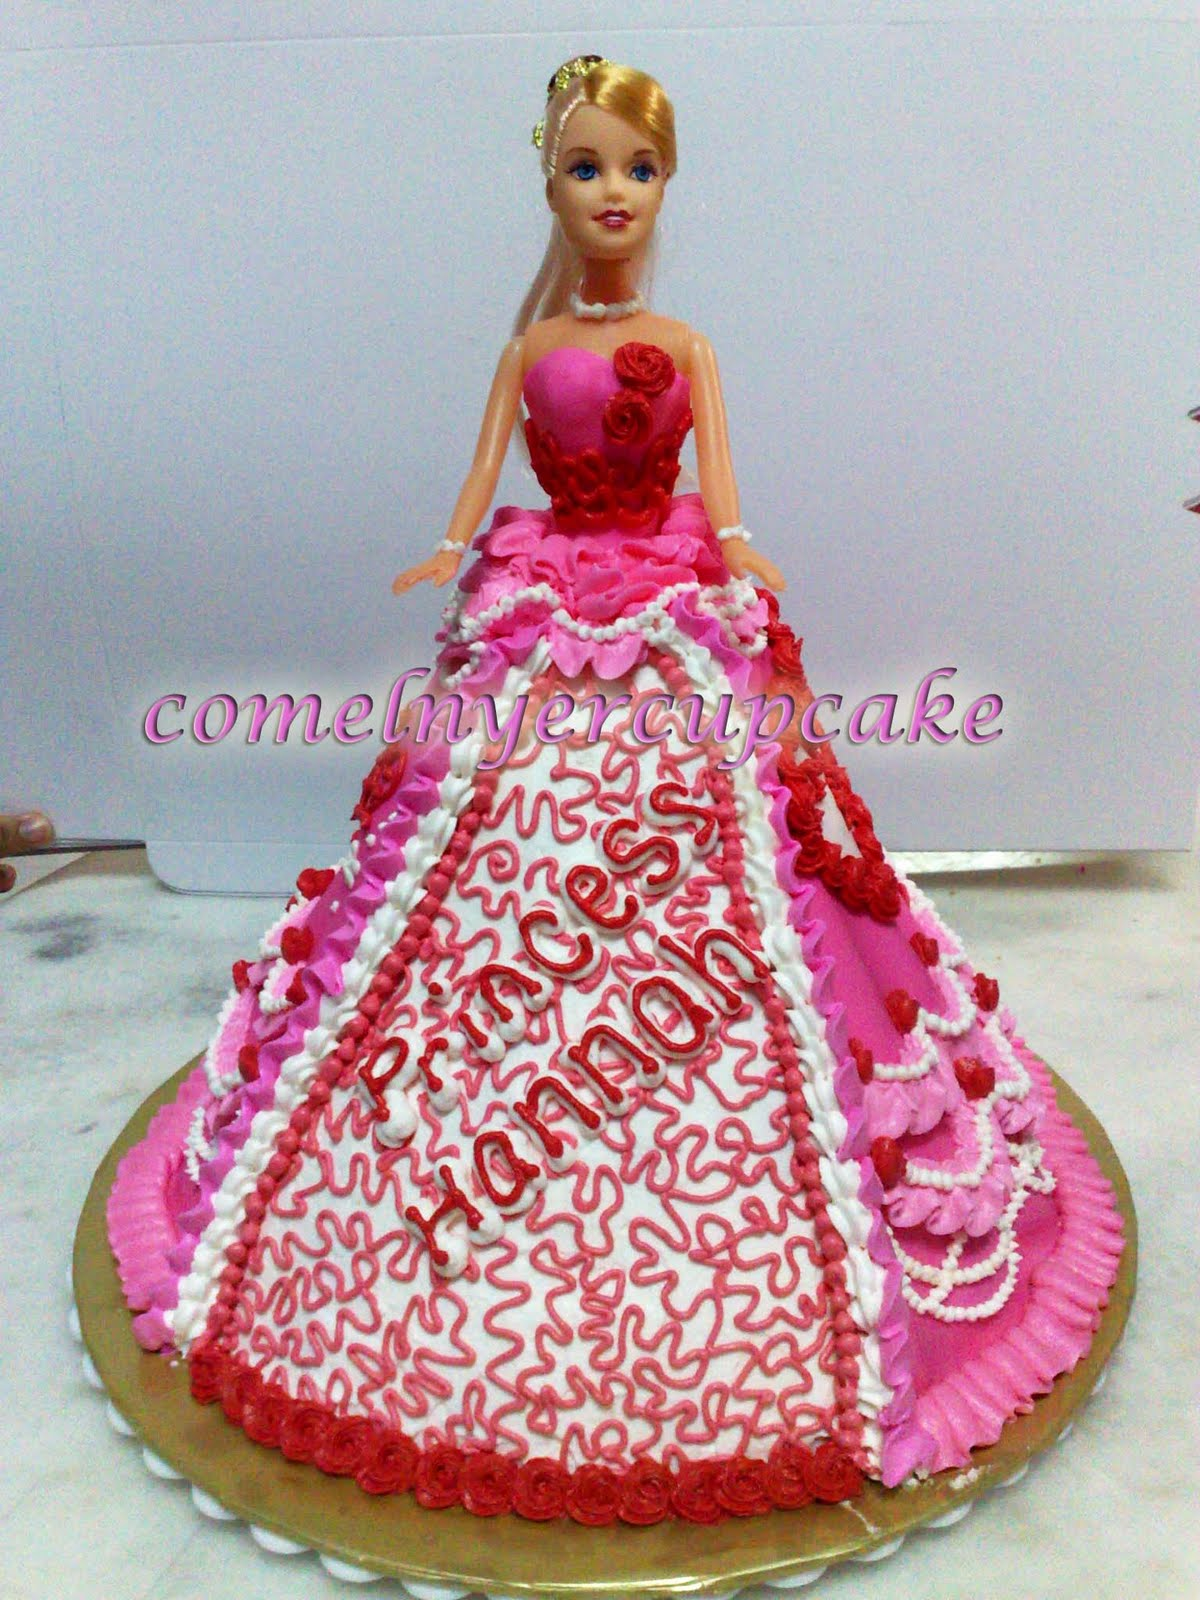 Birthday Cake Images Doll : comelnyercupcake: Barbie doll cakes: Princess Hannah